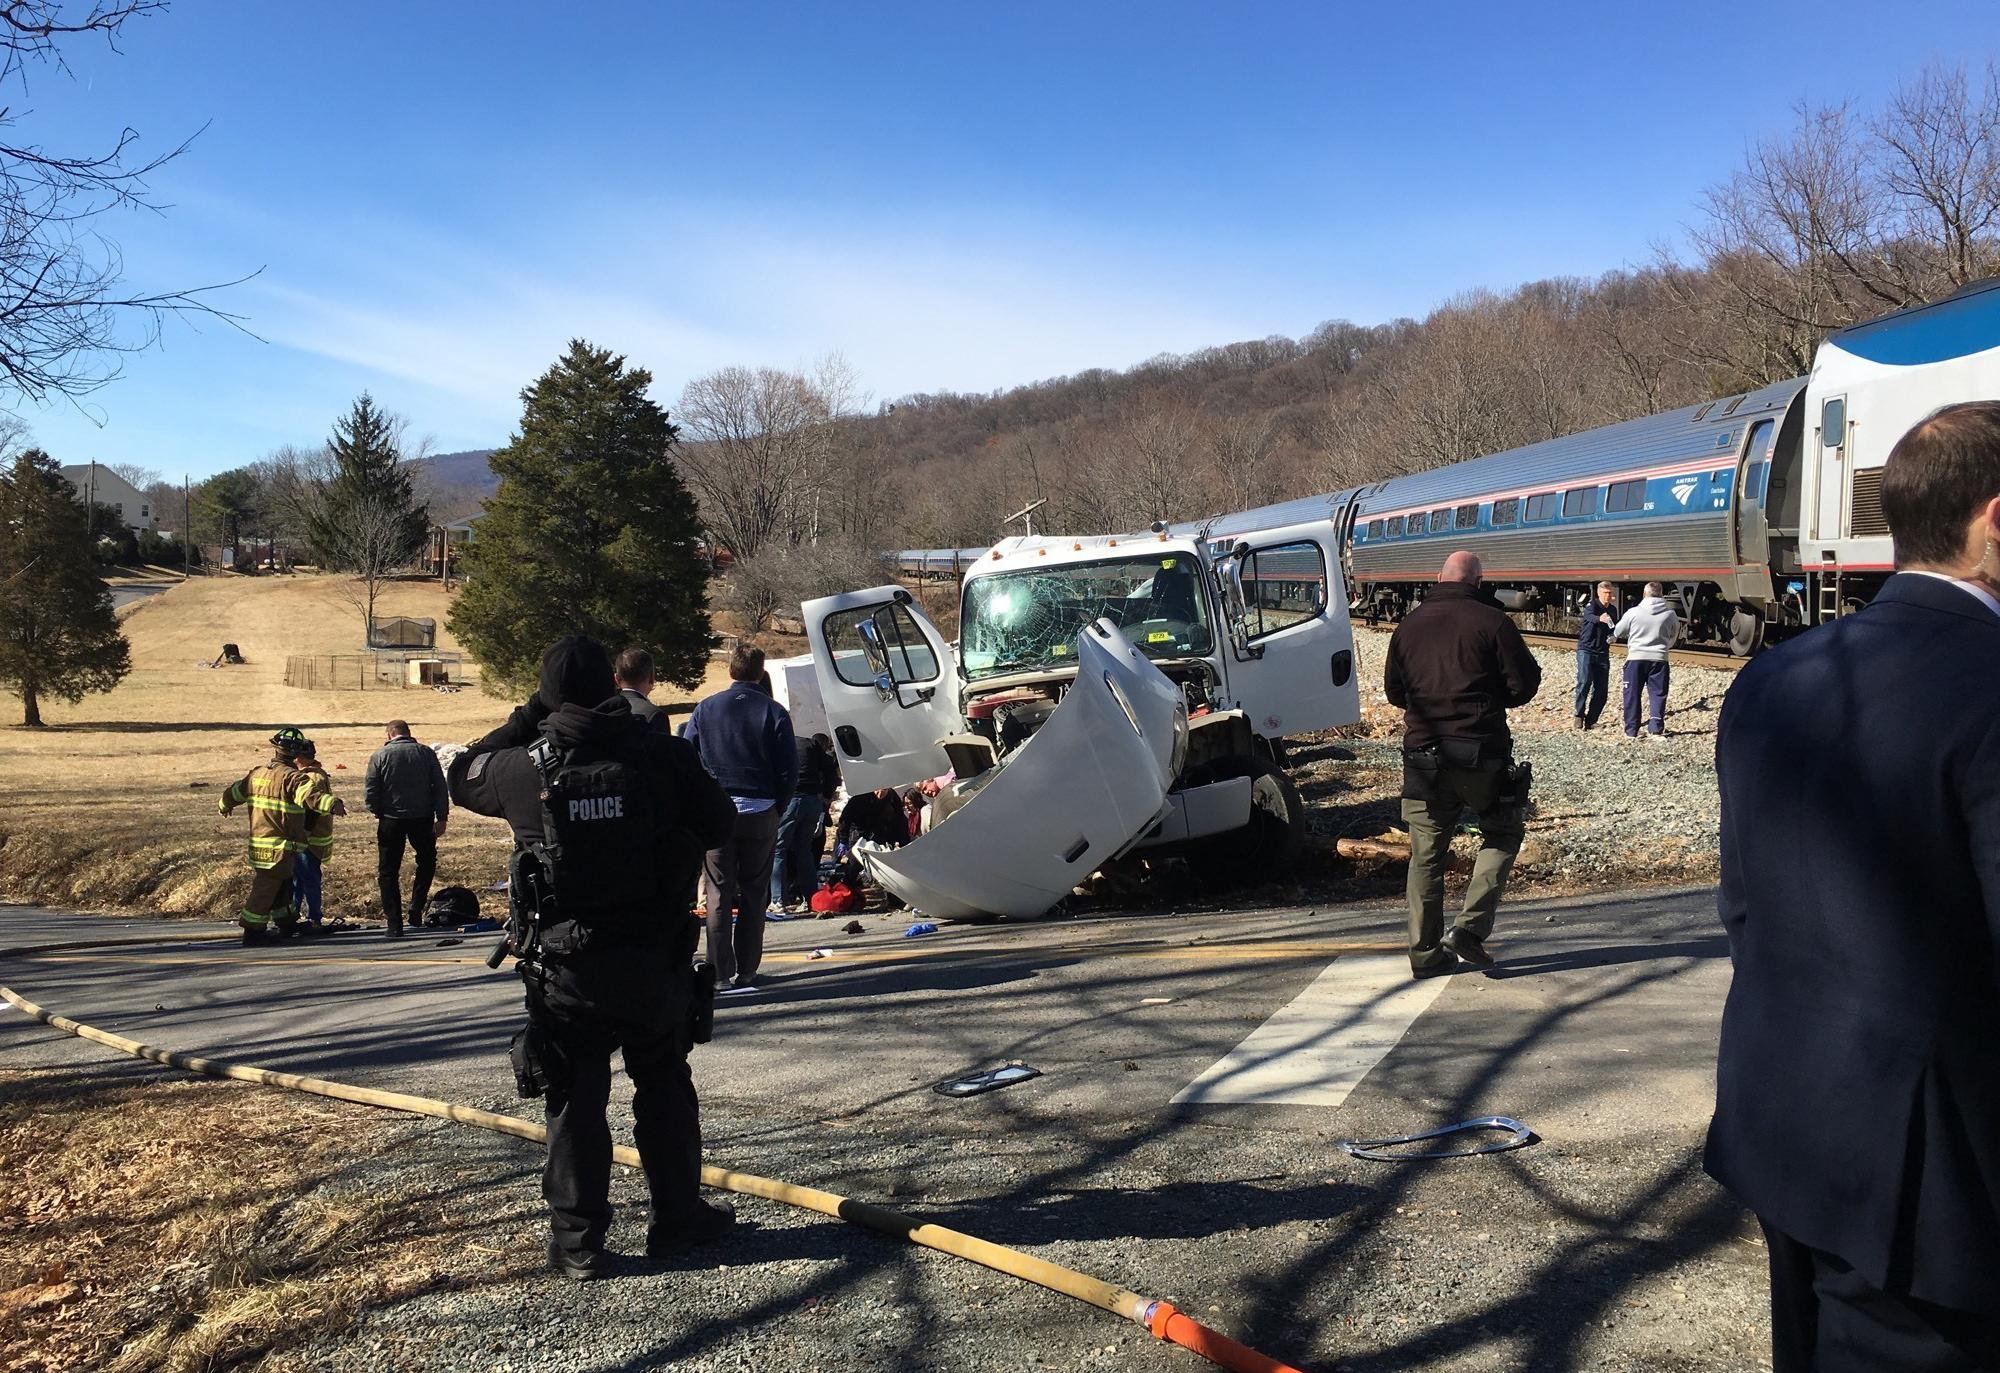 This photo provided by Rep. Bruce Poliquin, R-Maine shows emergency personnel standing near a chartered train carrying members of Congress after it hit a garbage truck in Crozet, Va., Wednesday, Jan. 31, 2018.  No lawmakers were believed injured.  (Bruce Poliquin via AP)